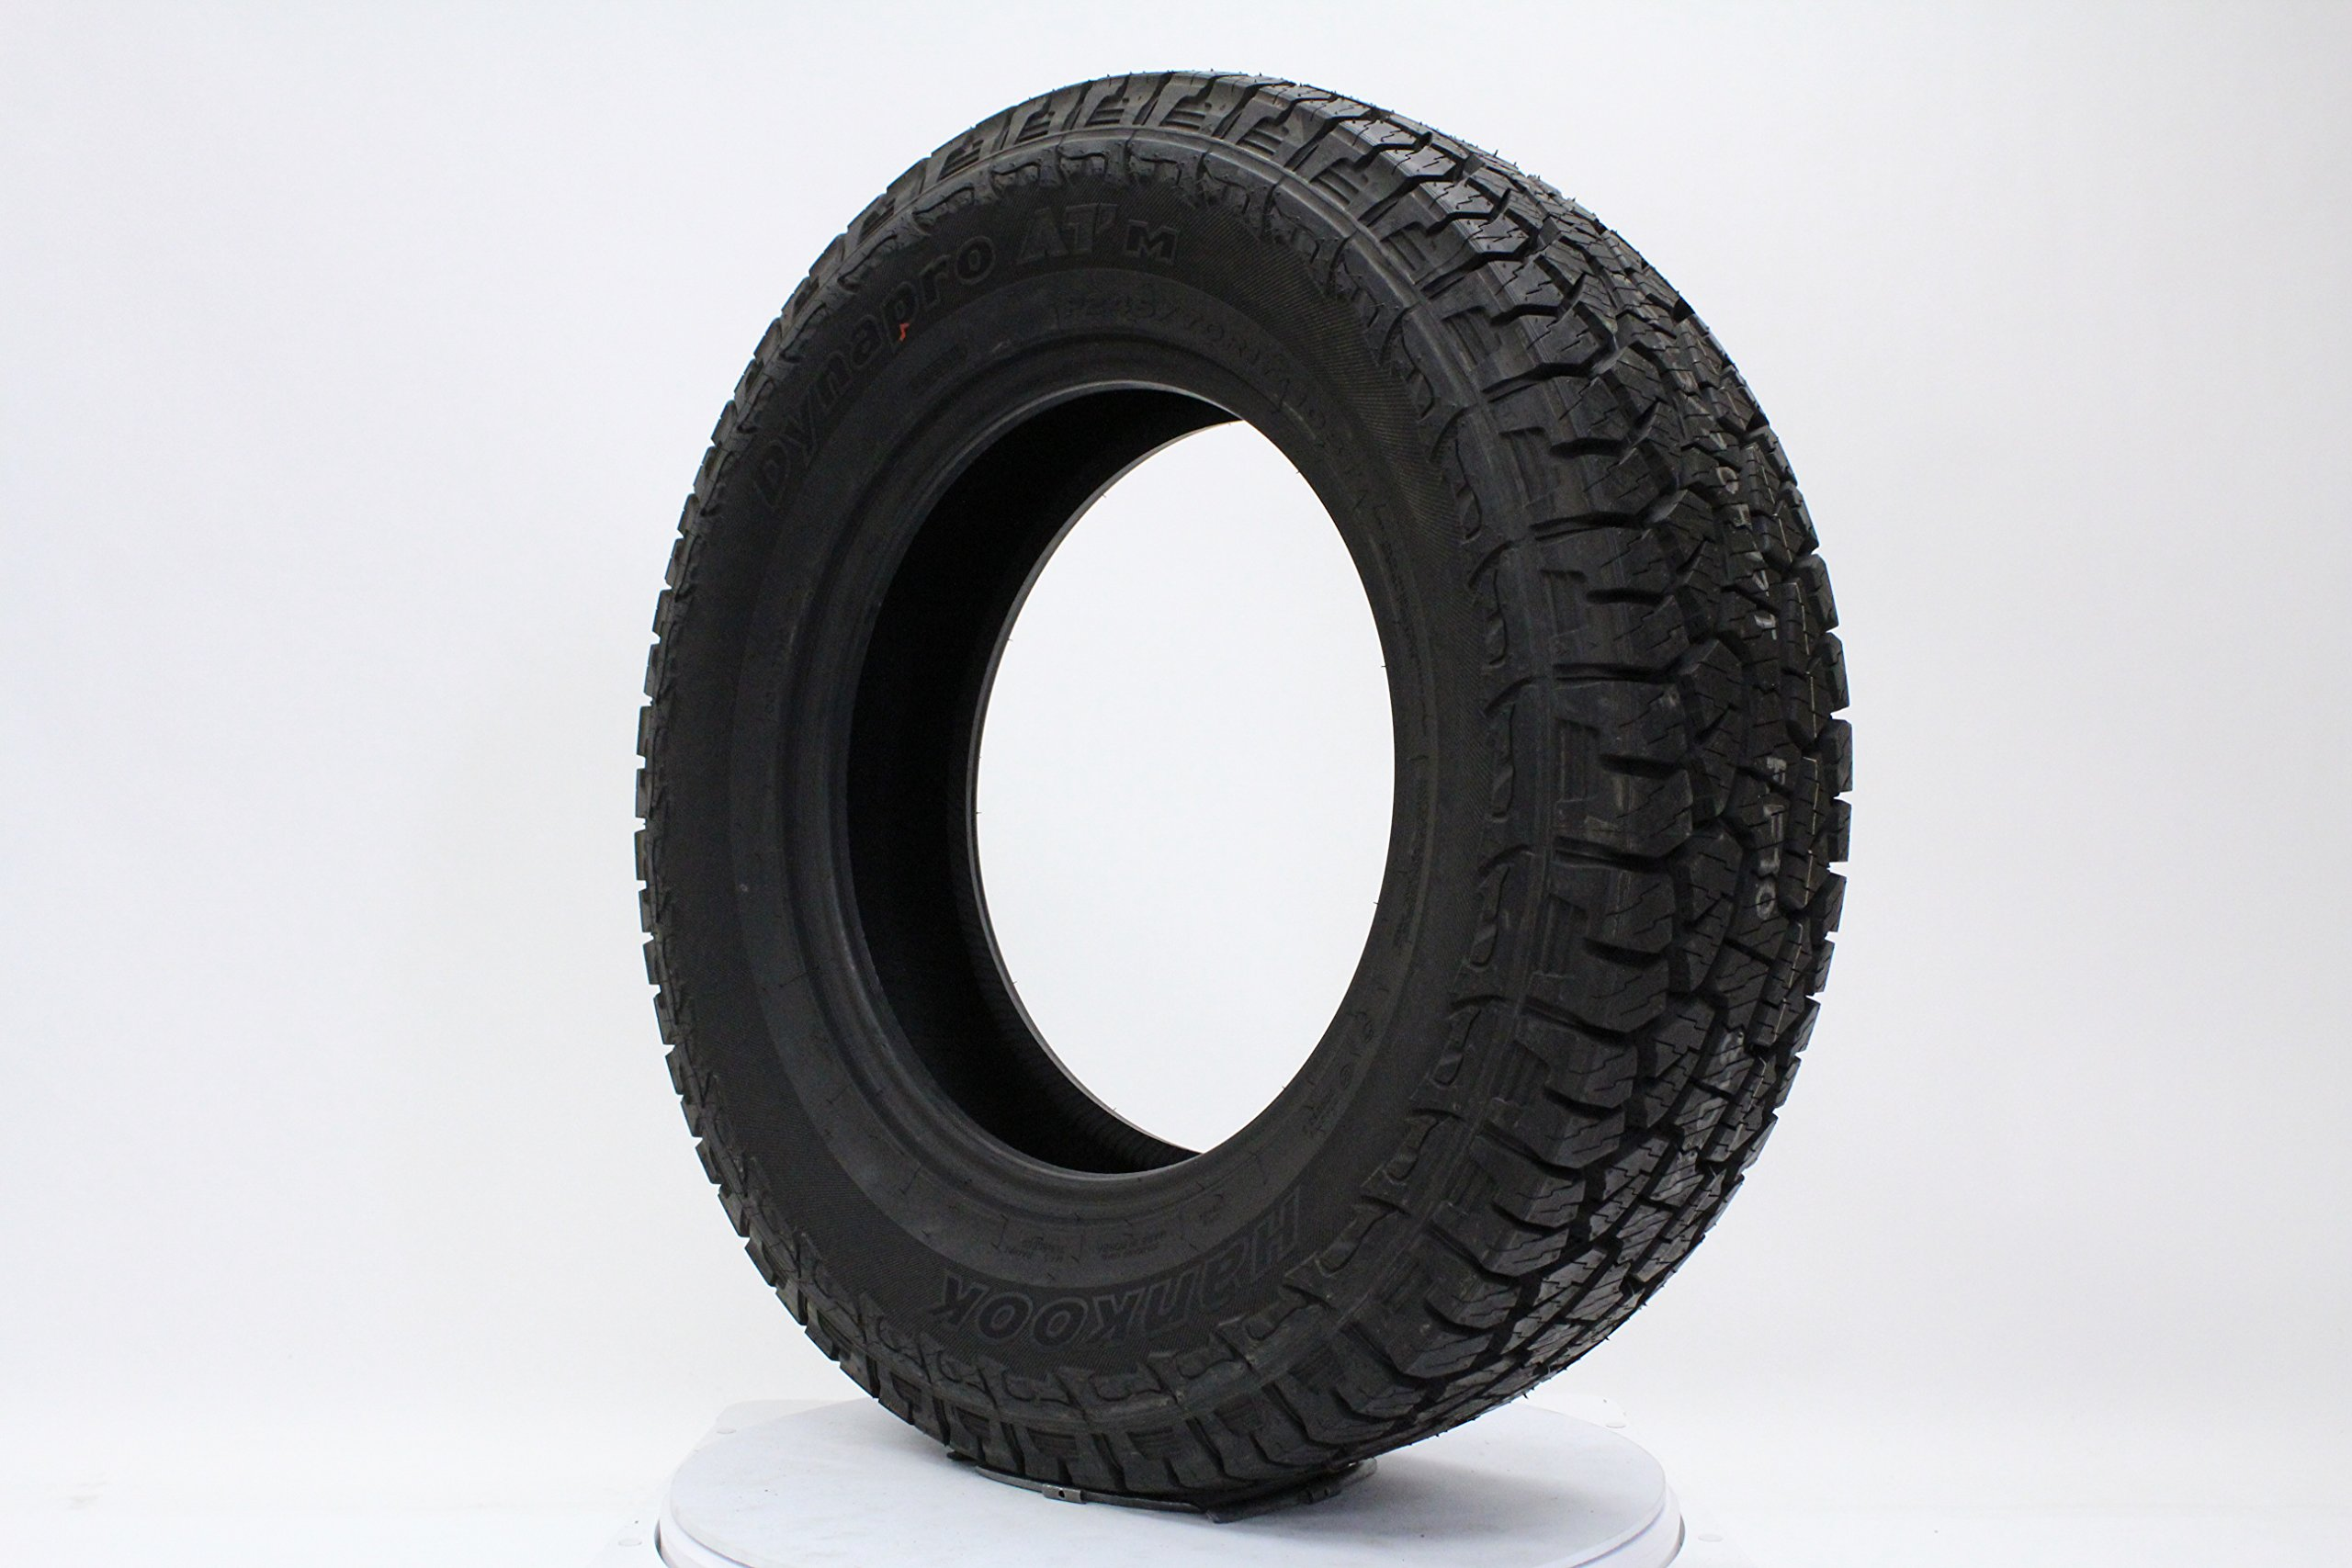 Hankook DynaPro ATM RF10 Off-Road Tire – 275/65R18 114T